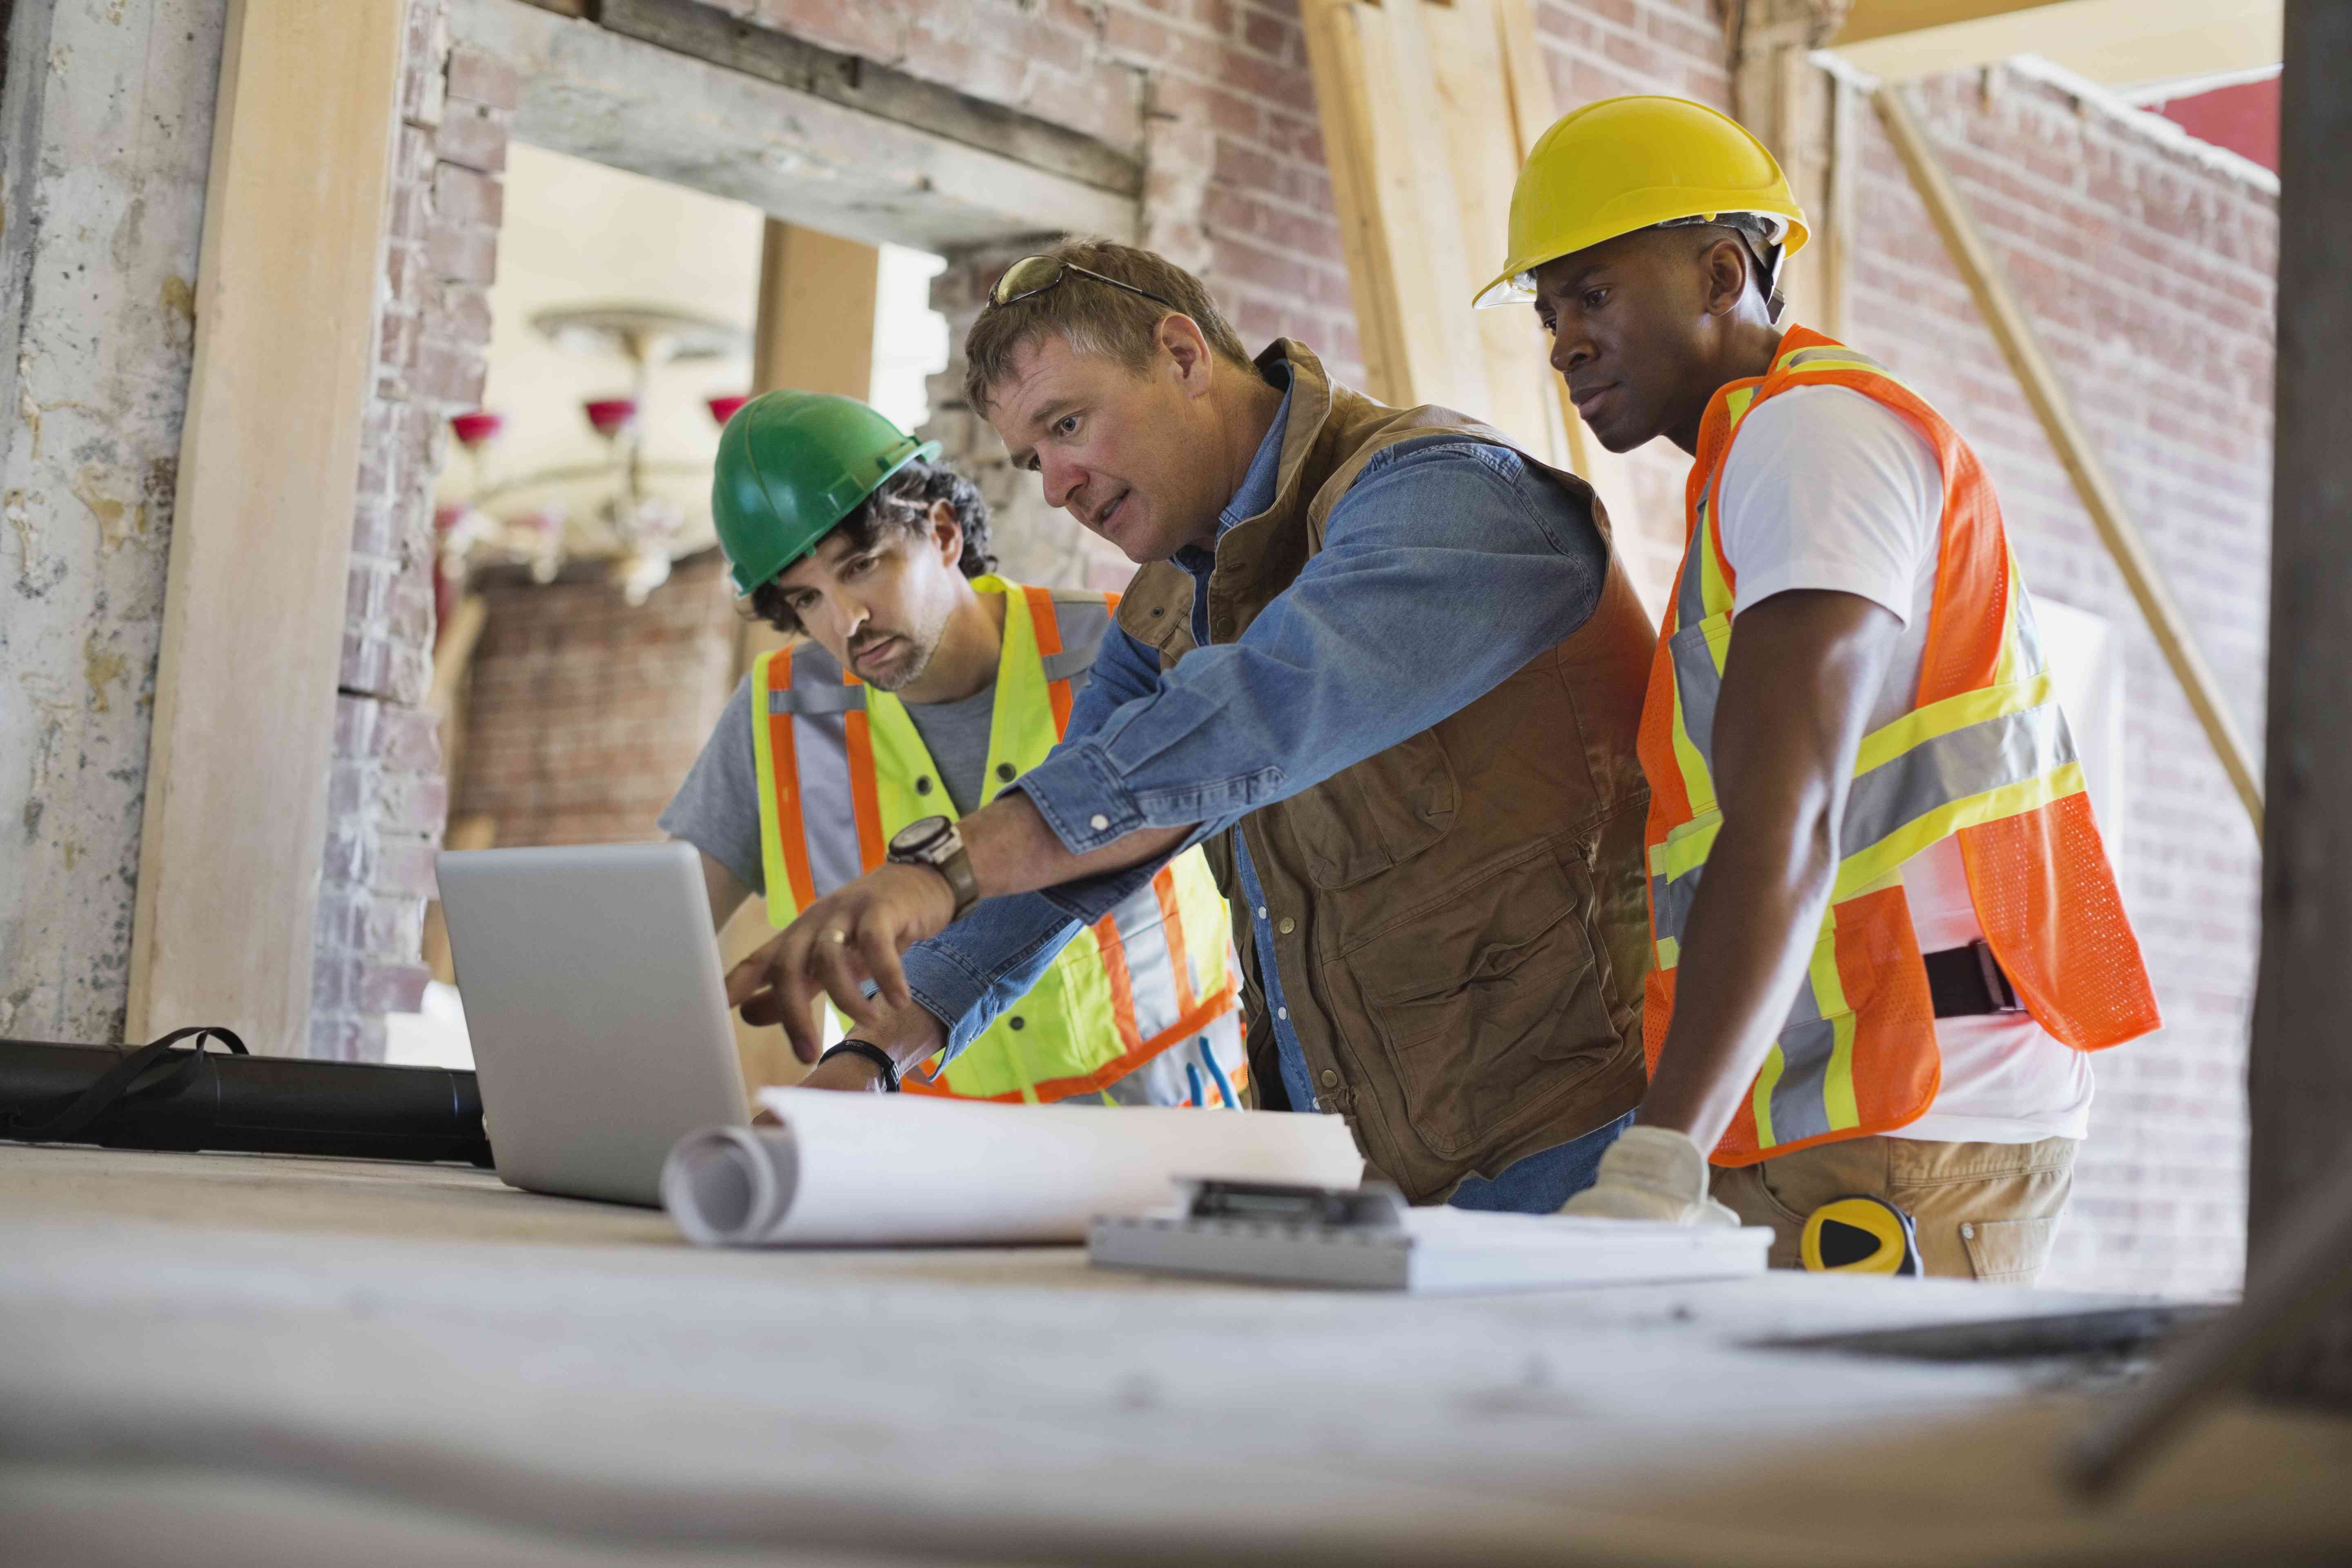 Foreman discussing plan on laptop with tradesmen at construction site